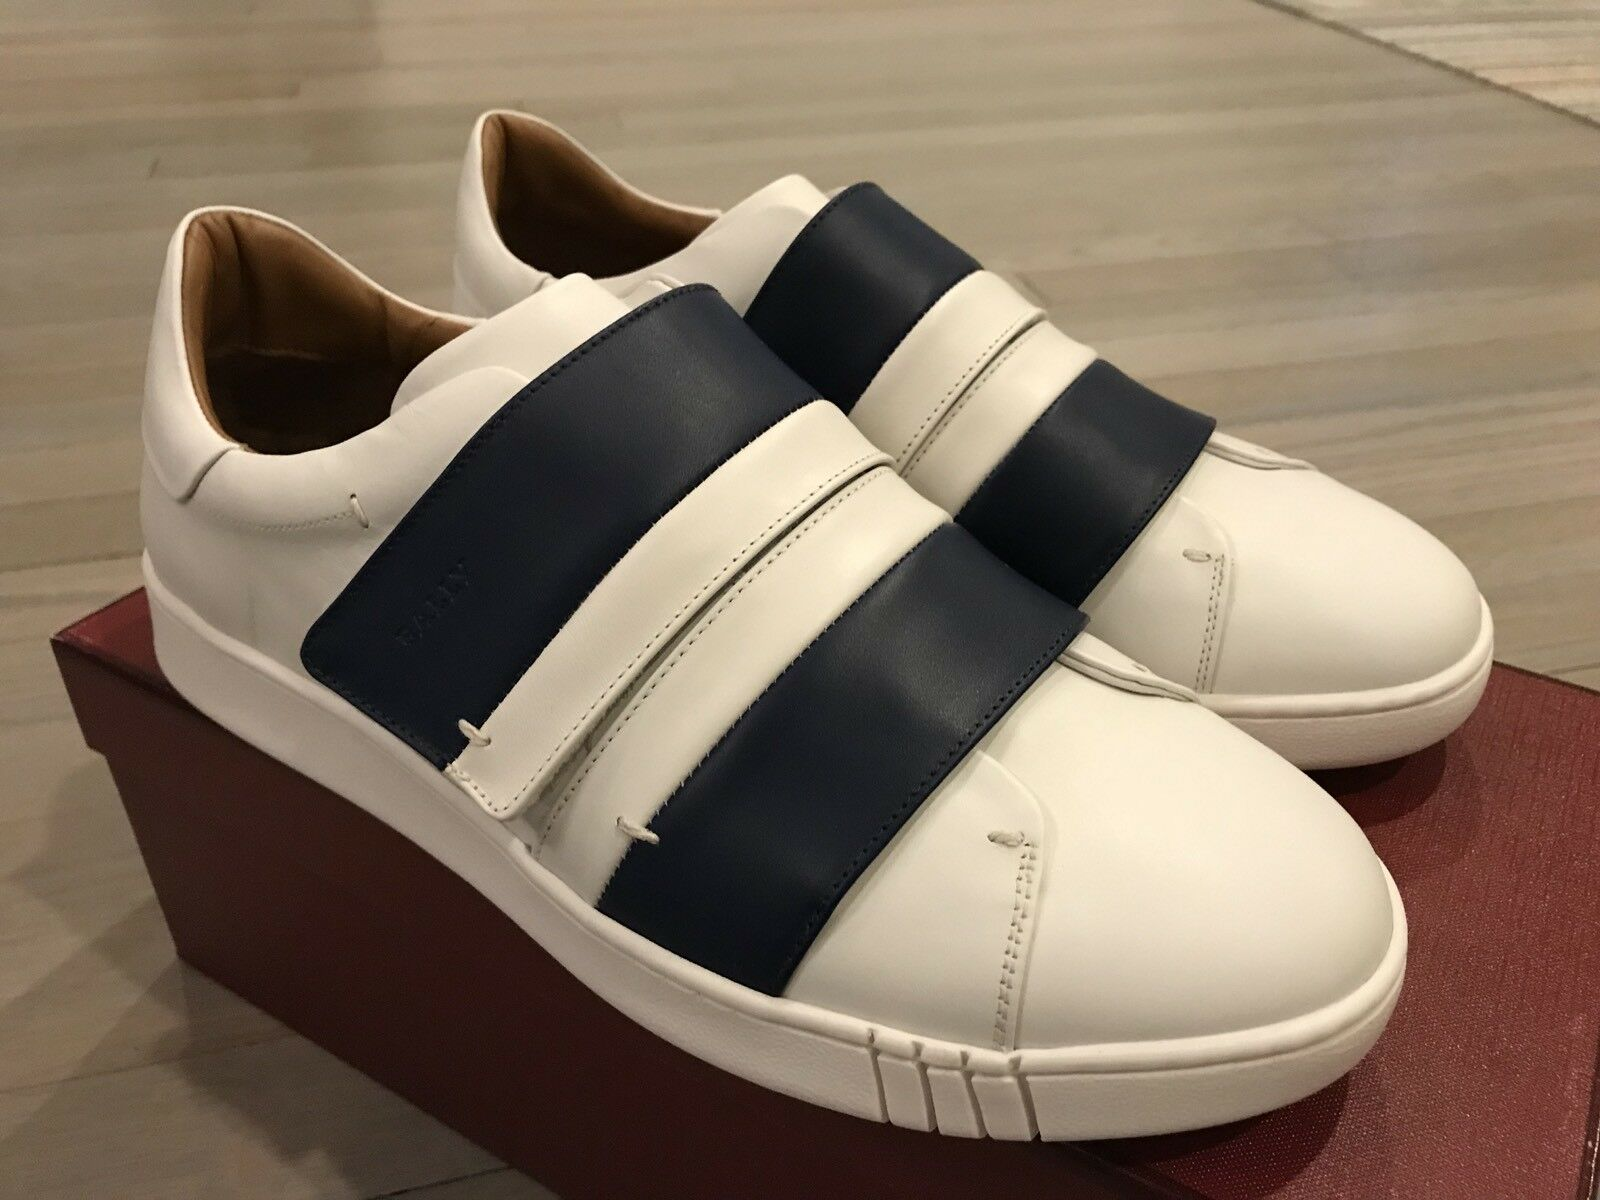 550  Bally Willet Willet Willet White and Blue Pelle Scarpe da Ginnastica size US 9 Made in Italy 37bdf2